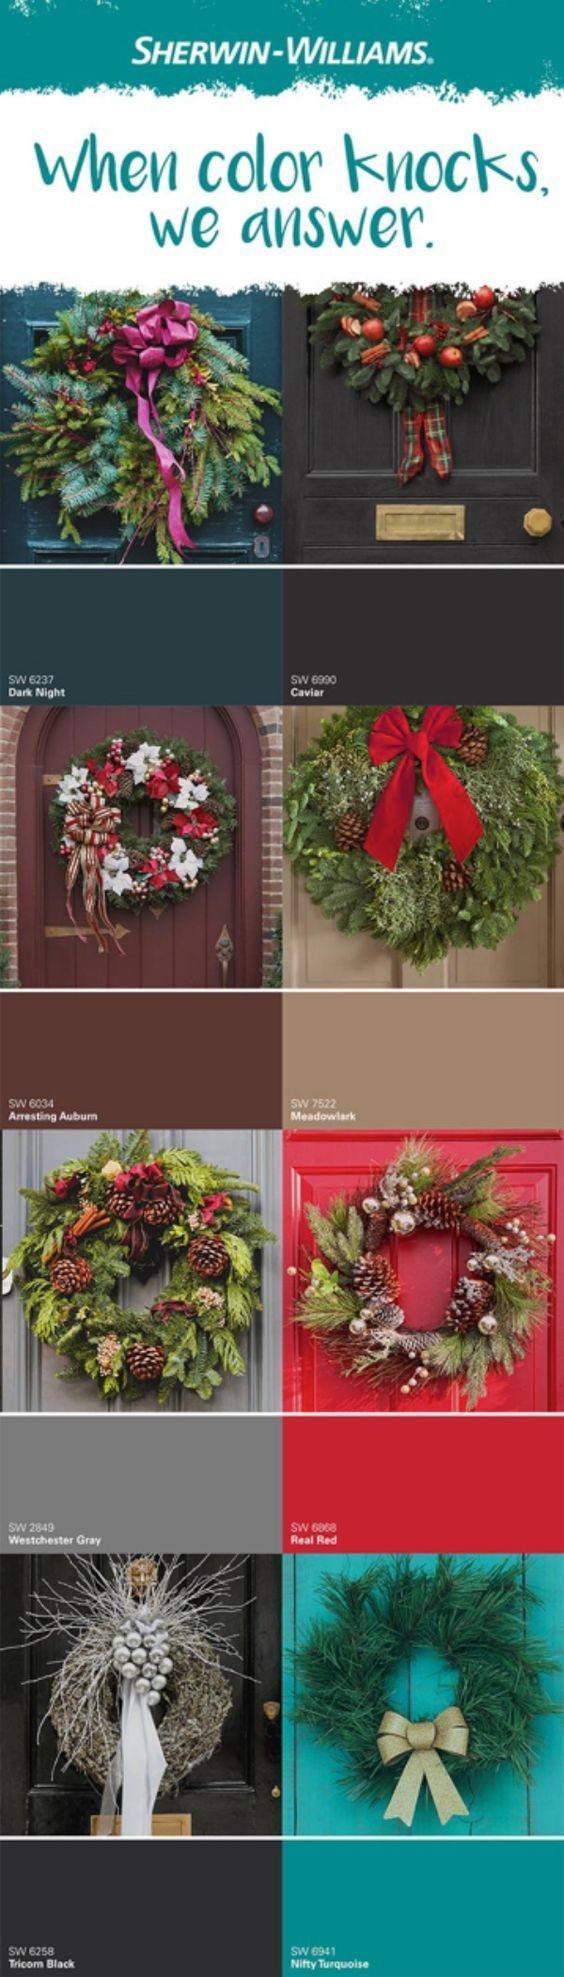 58 best whimsical winter winter paint colors images on pinterest check out these whimsical winter paint colors from sherwin williams do any of them inspire nvjuhfo Images